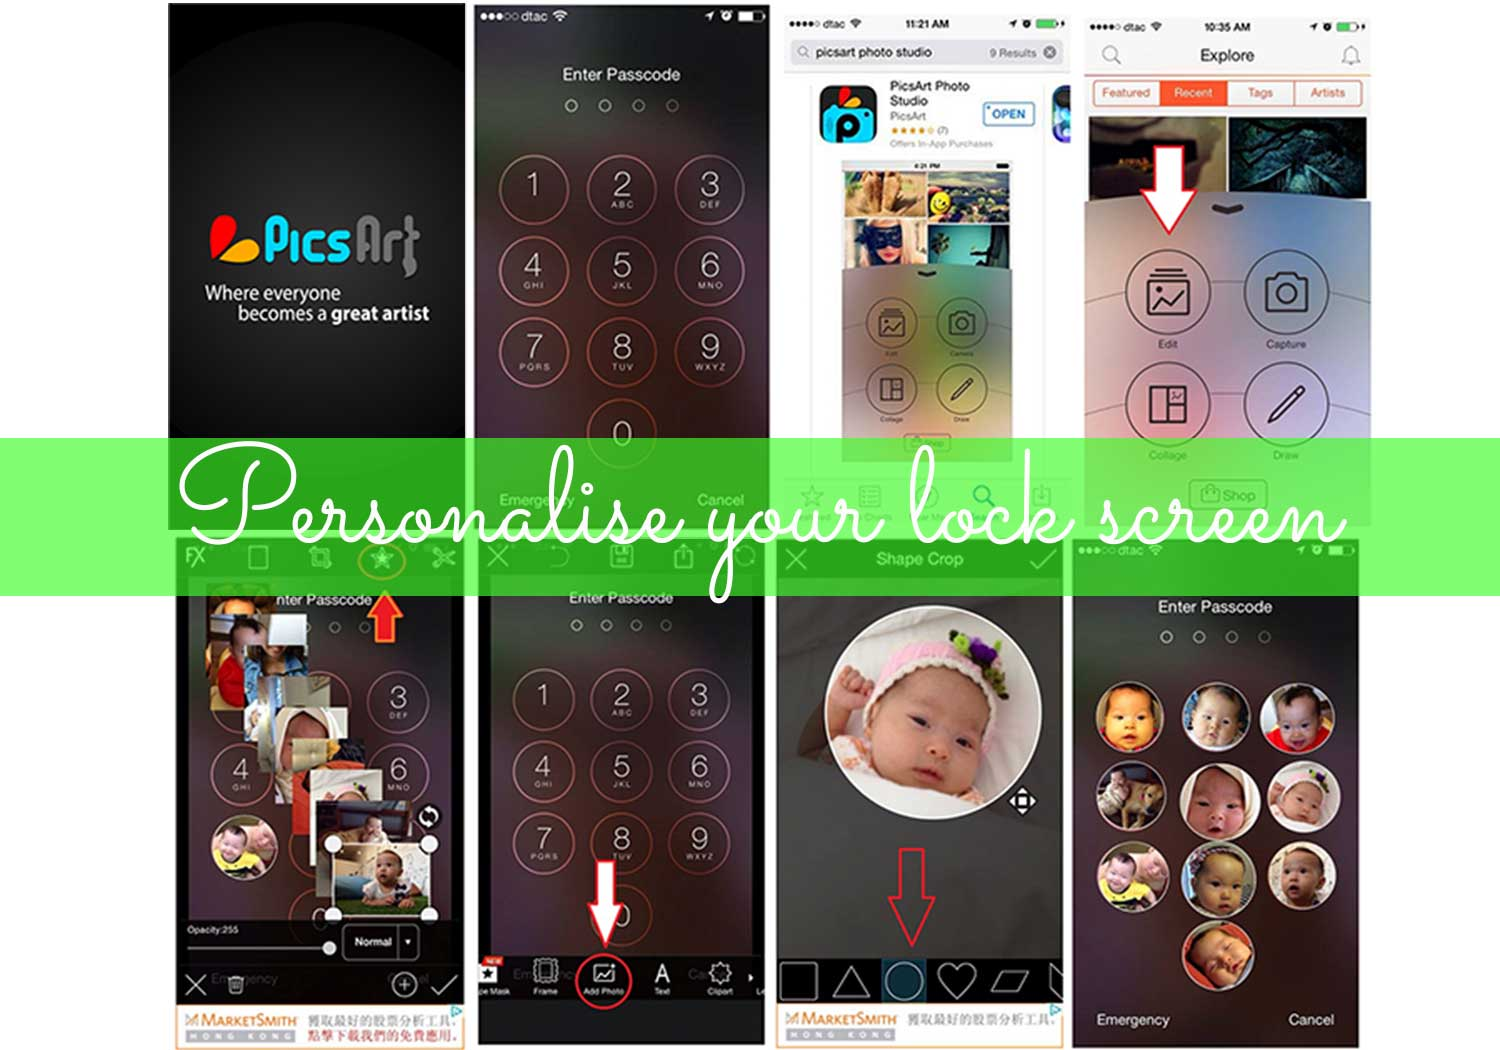 Click next for step-by-step instructions on personalizing your screen lock